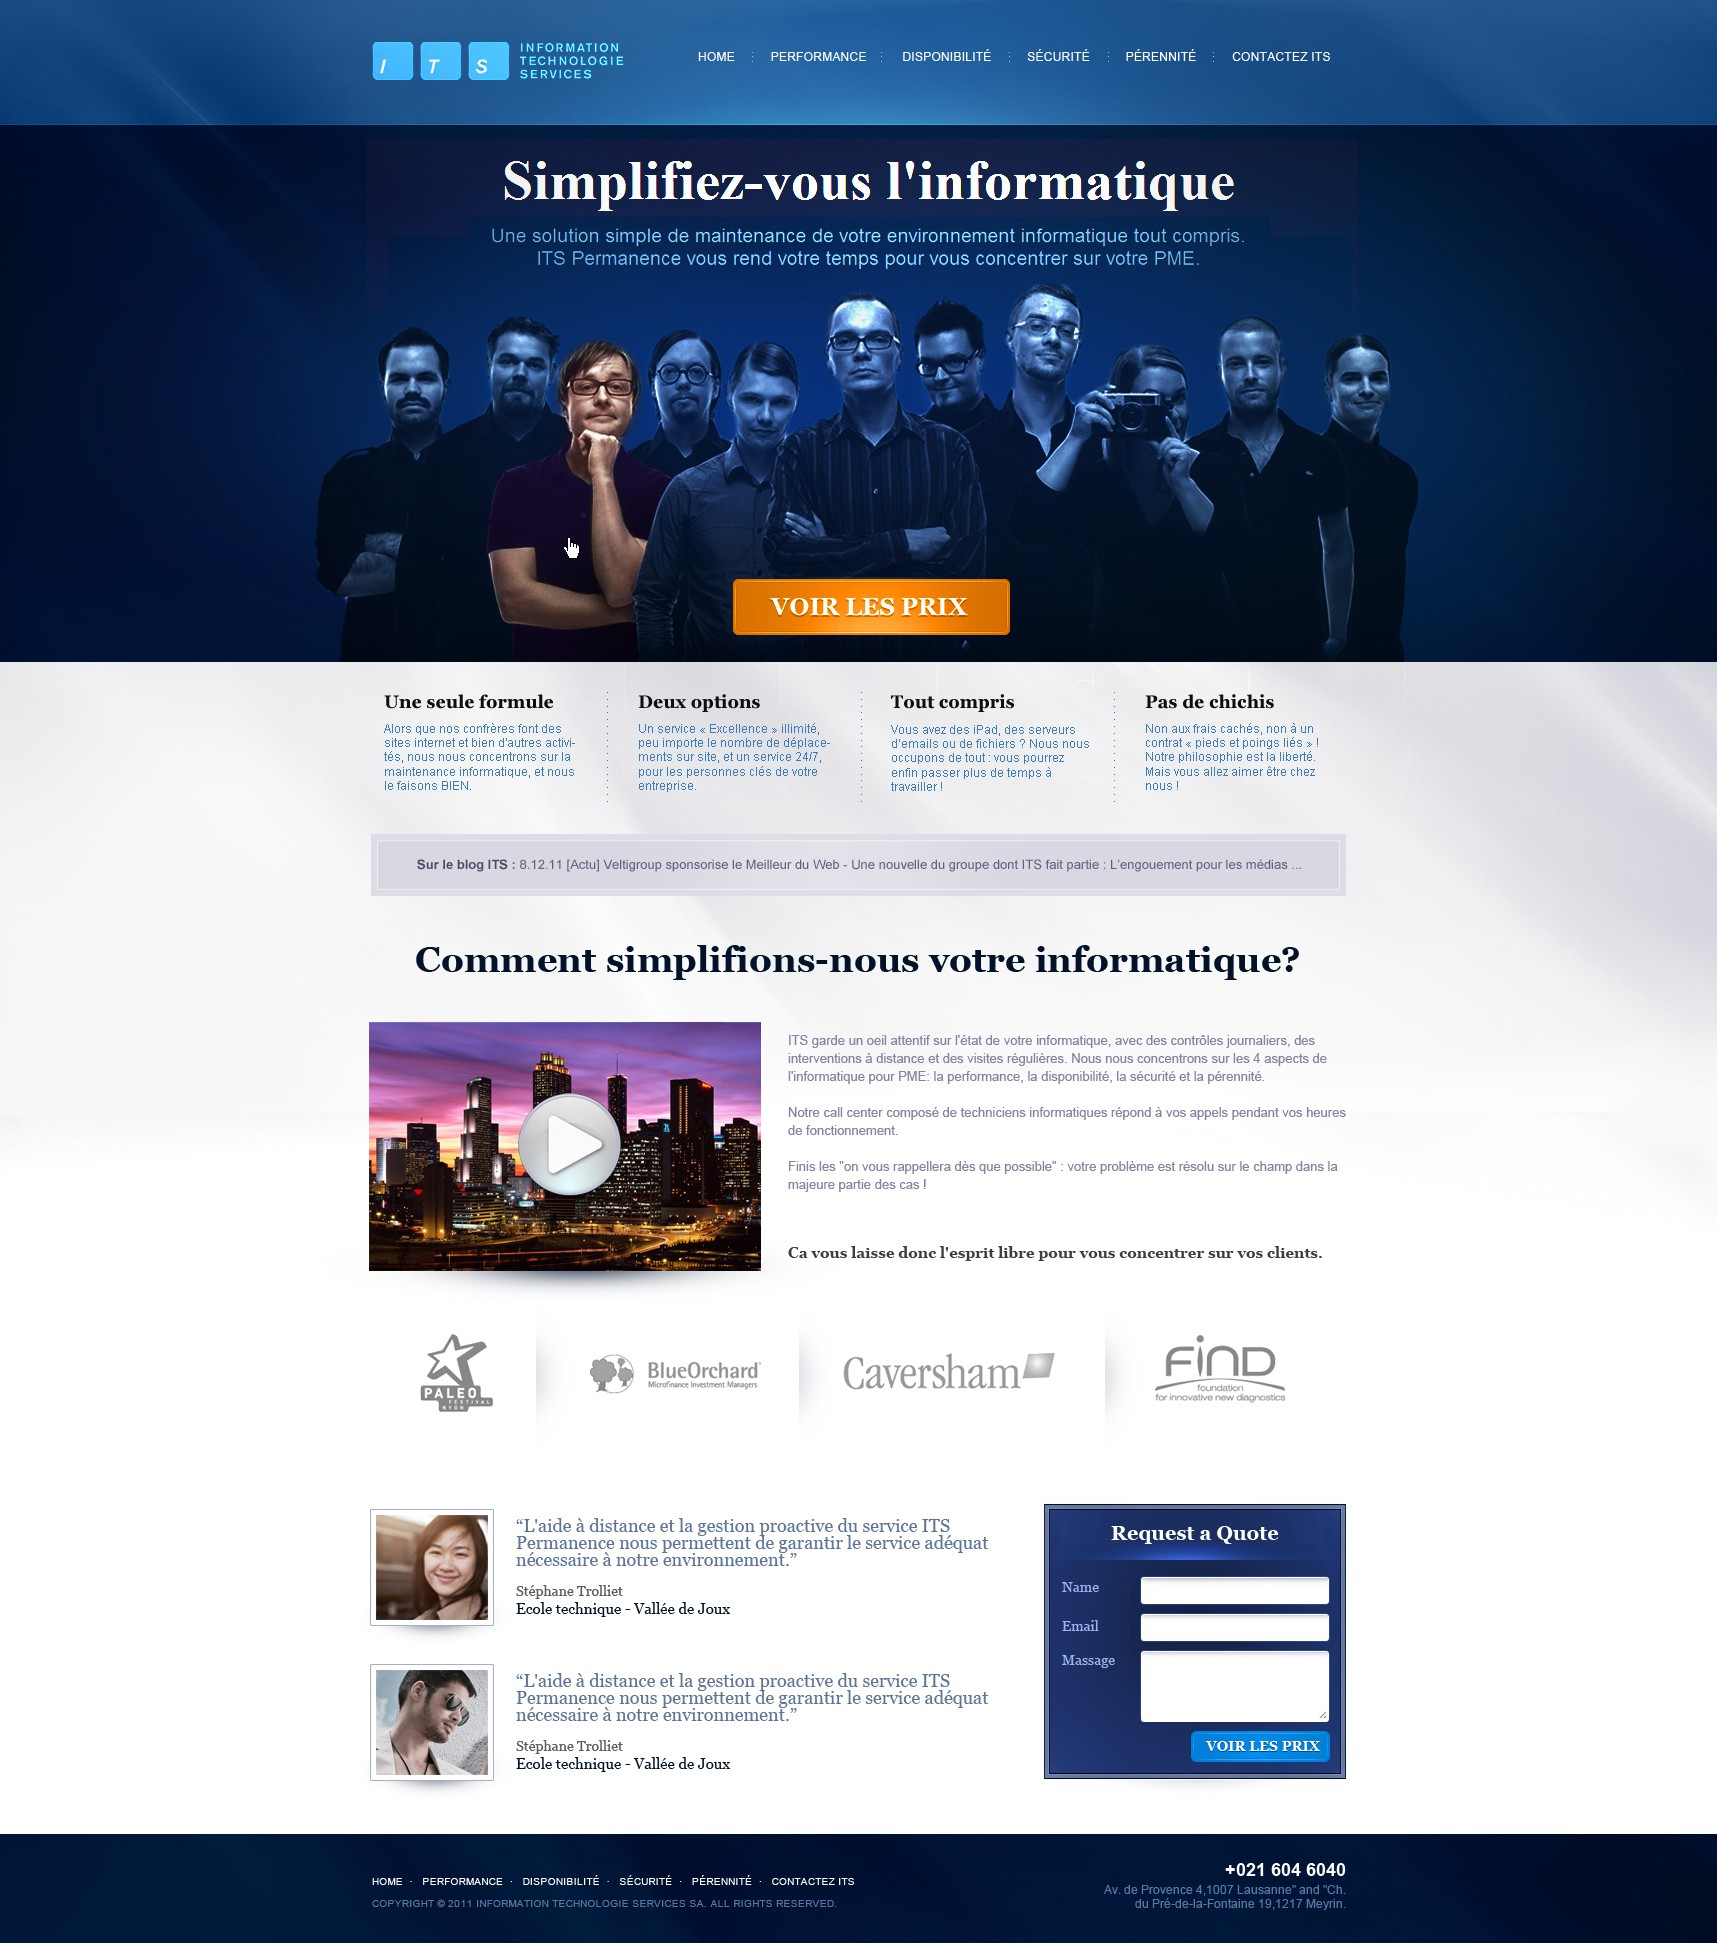 ITS Information Technologie Services SA needs a new website design